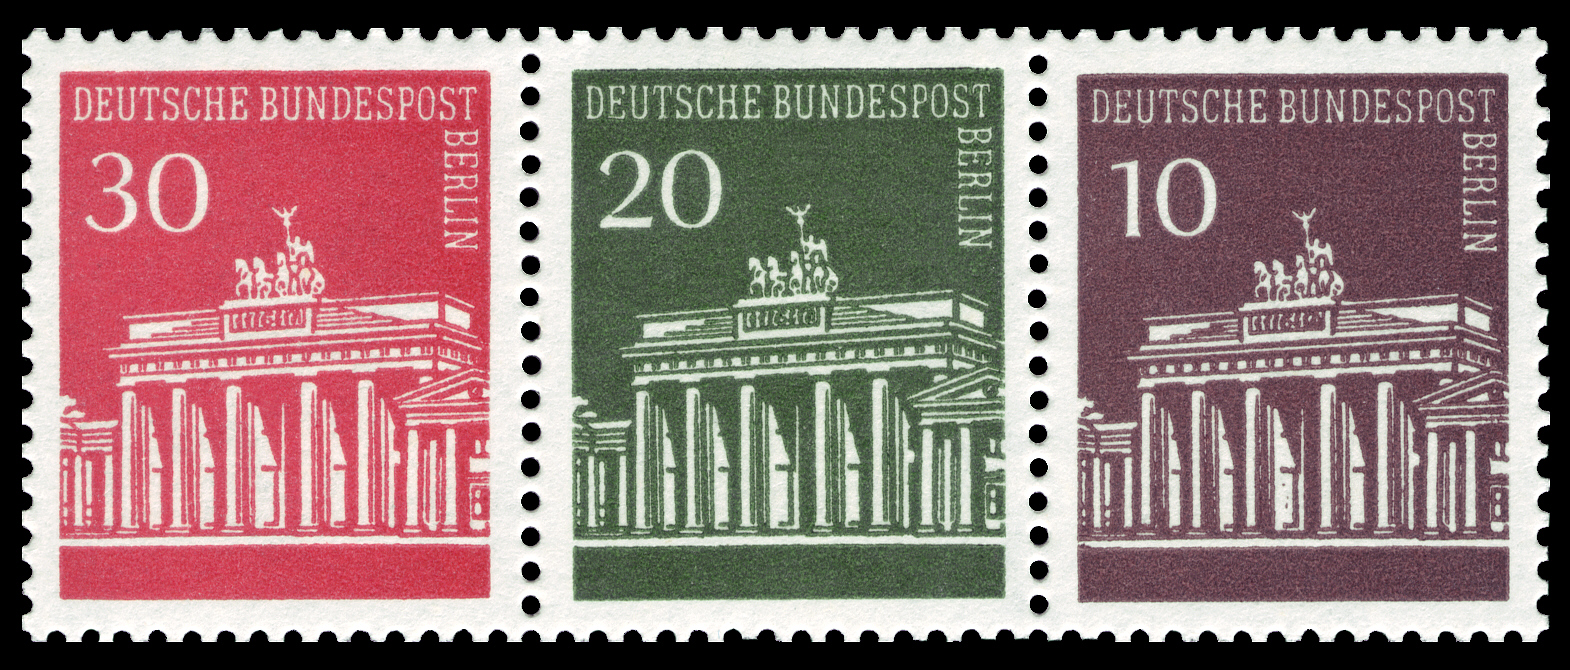 Brandenburger Tor Briefmarkenserie Wikipedia